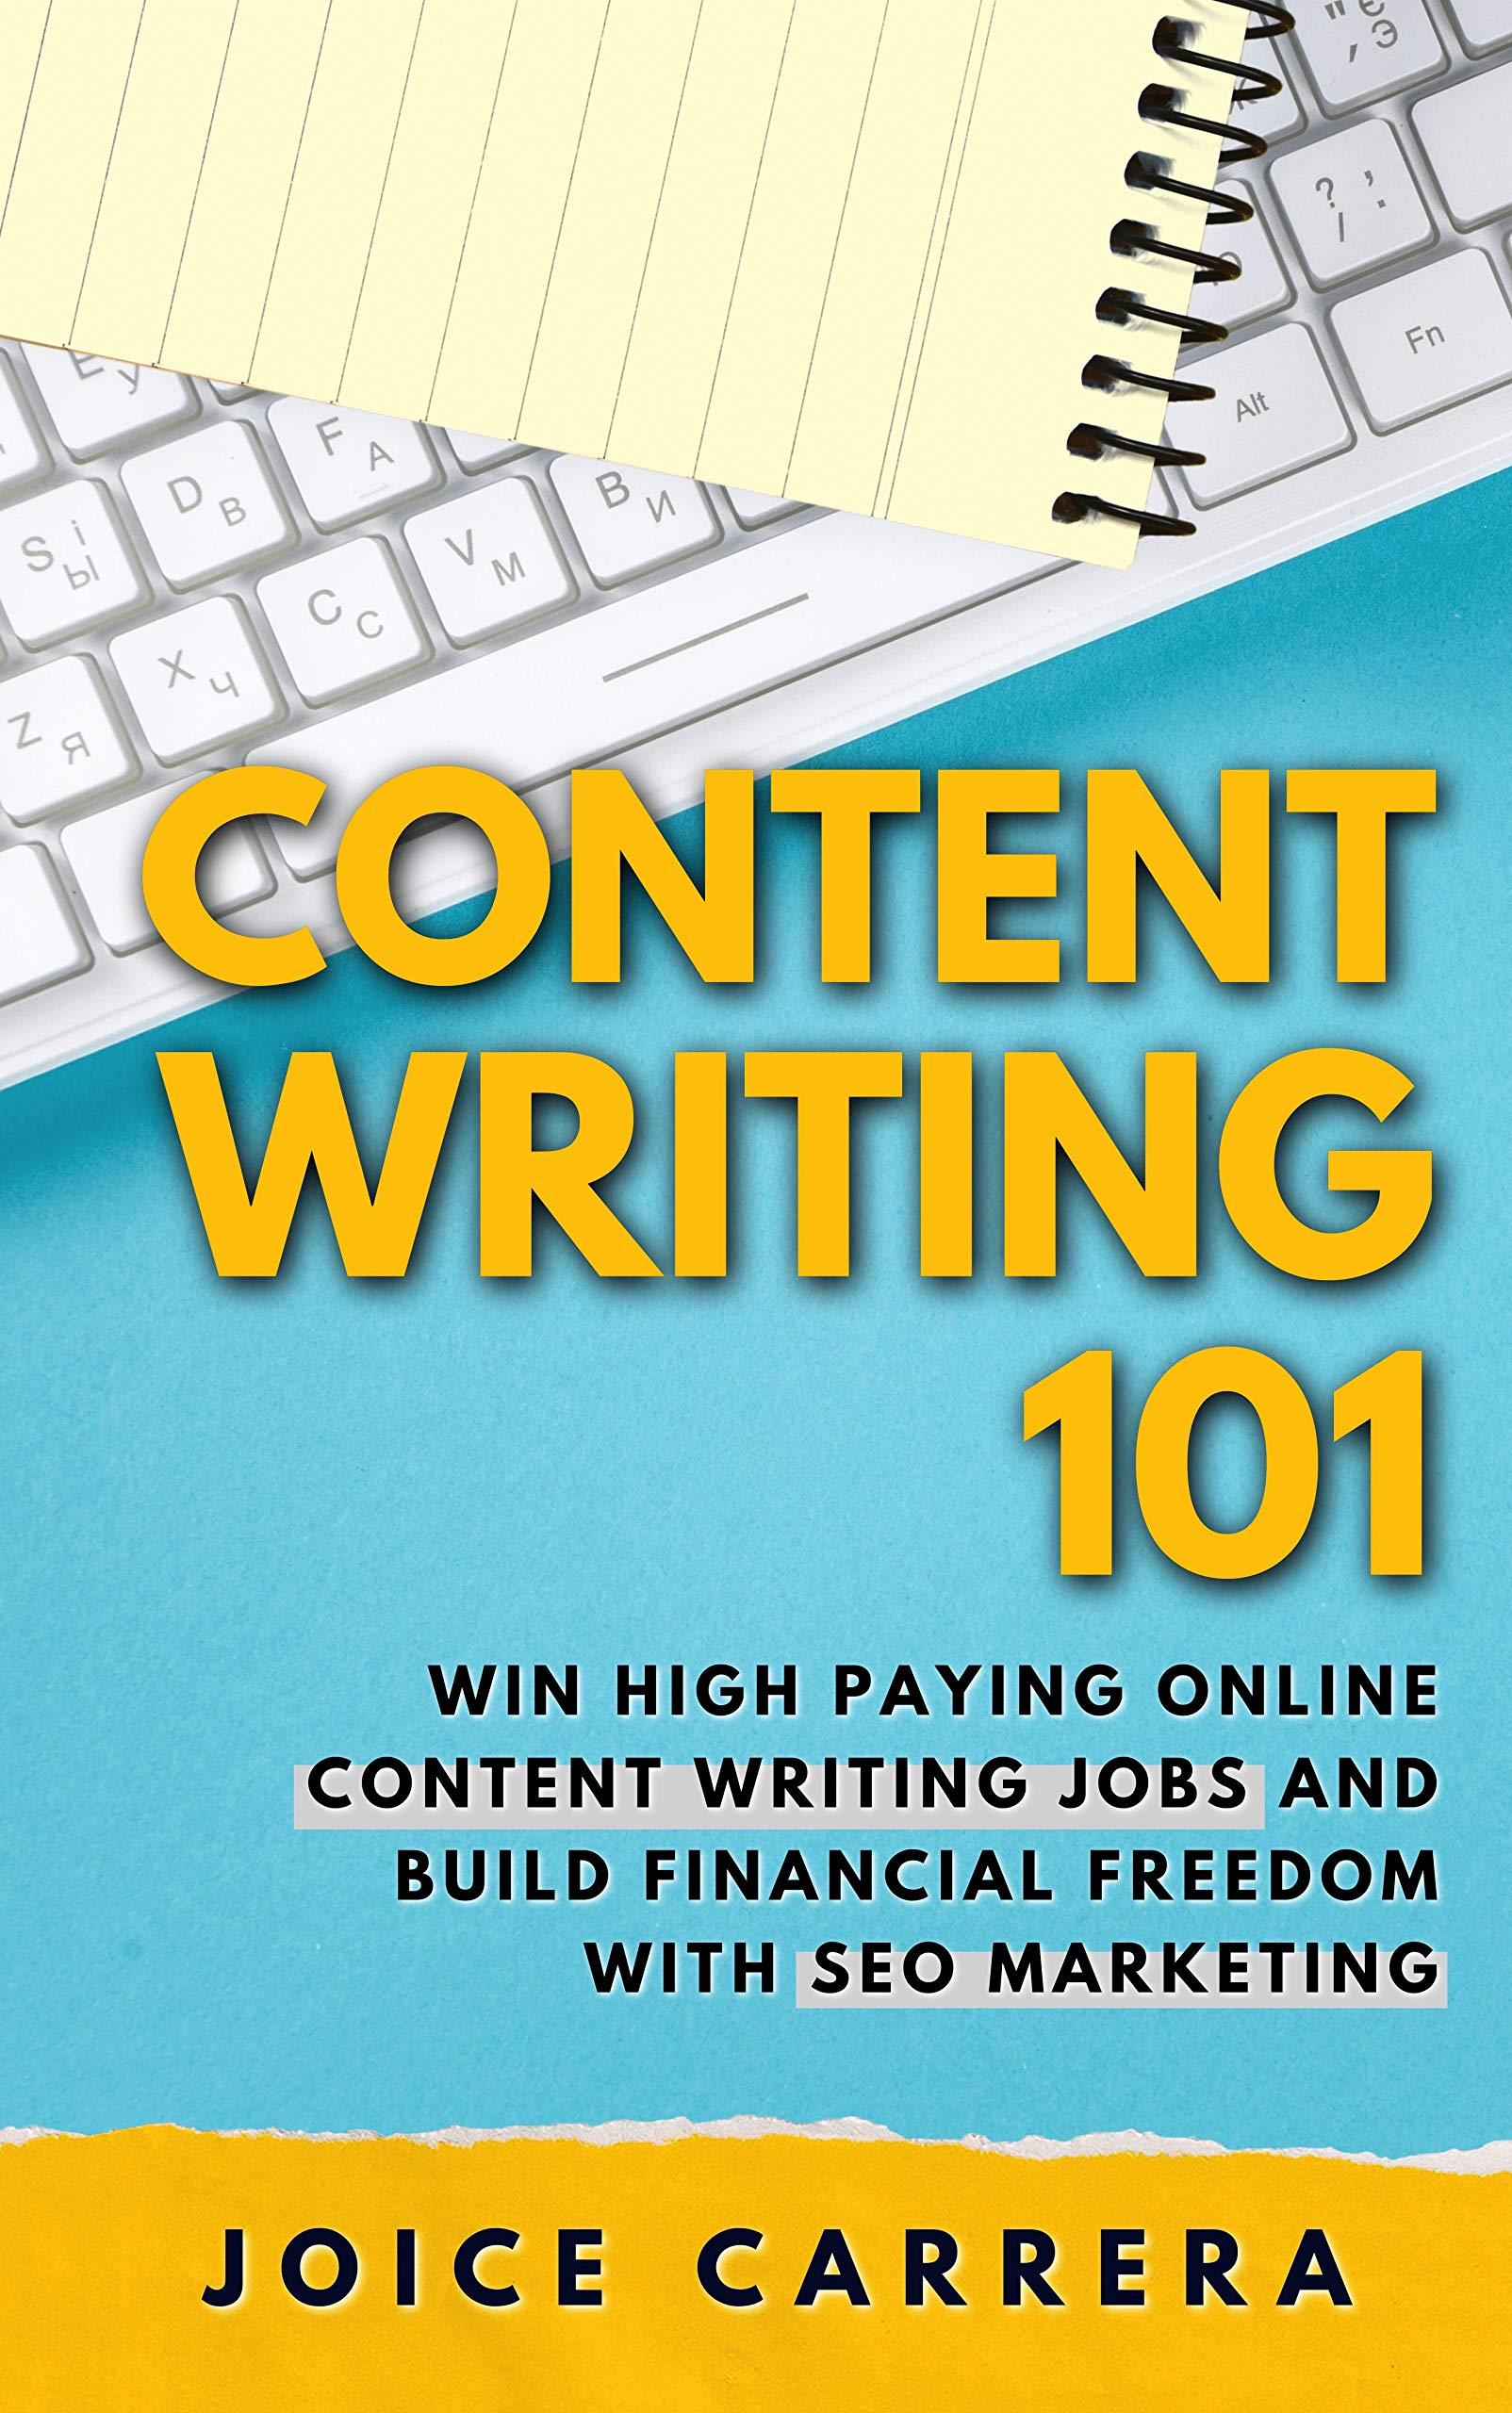 Content Writing 101: Win High Paying Online Content Writing Jobs And Build Financial Freedom With SEO Marketing